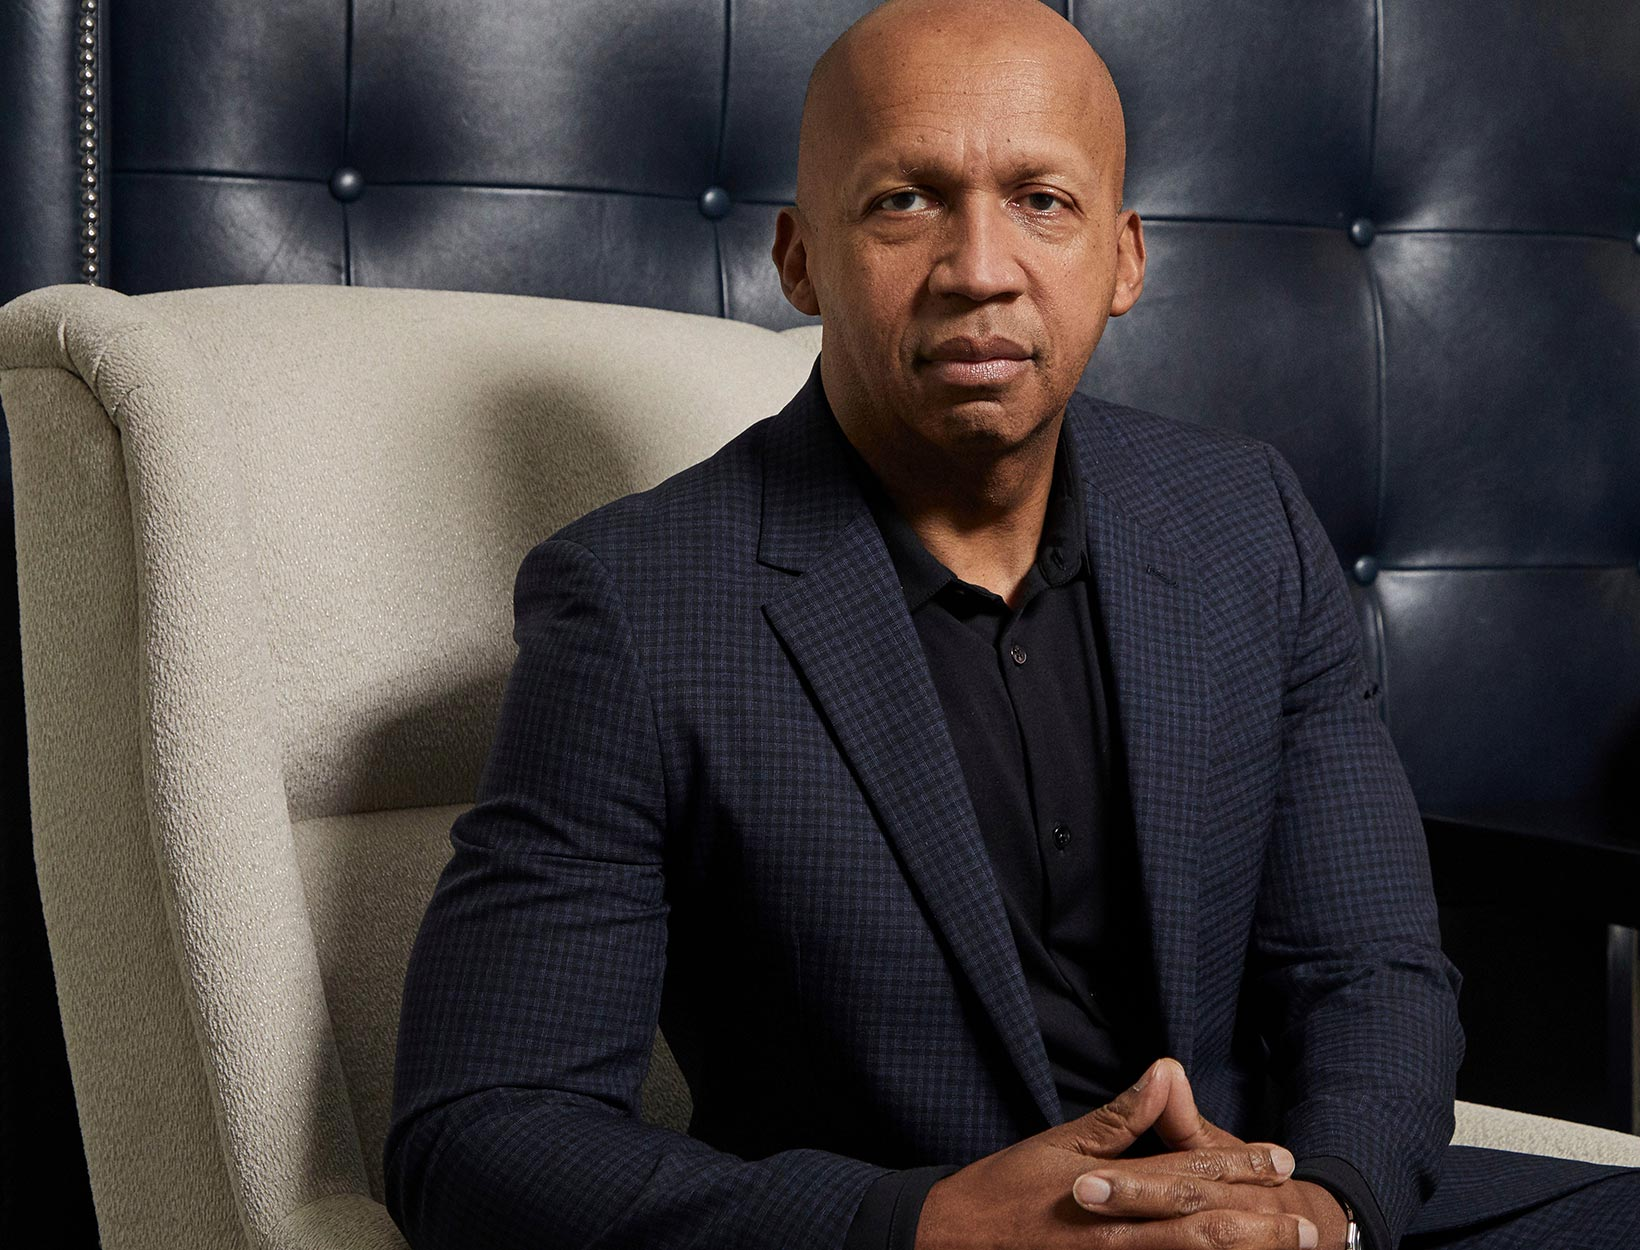 Bryan Stevenson: We Are Better than the Worst Things We've Done